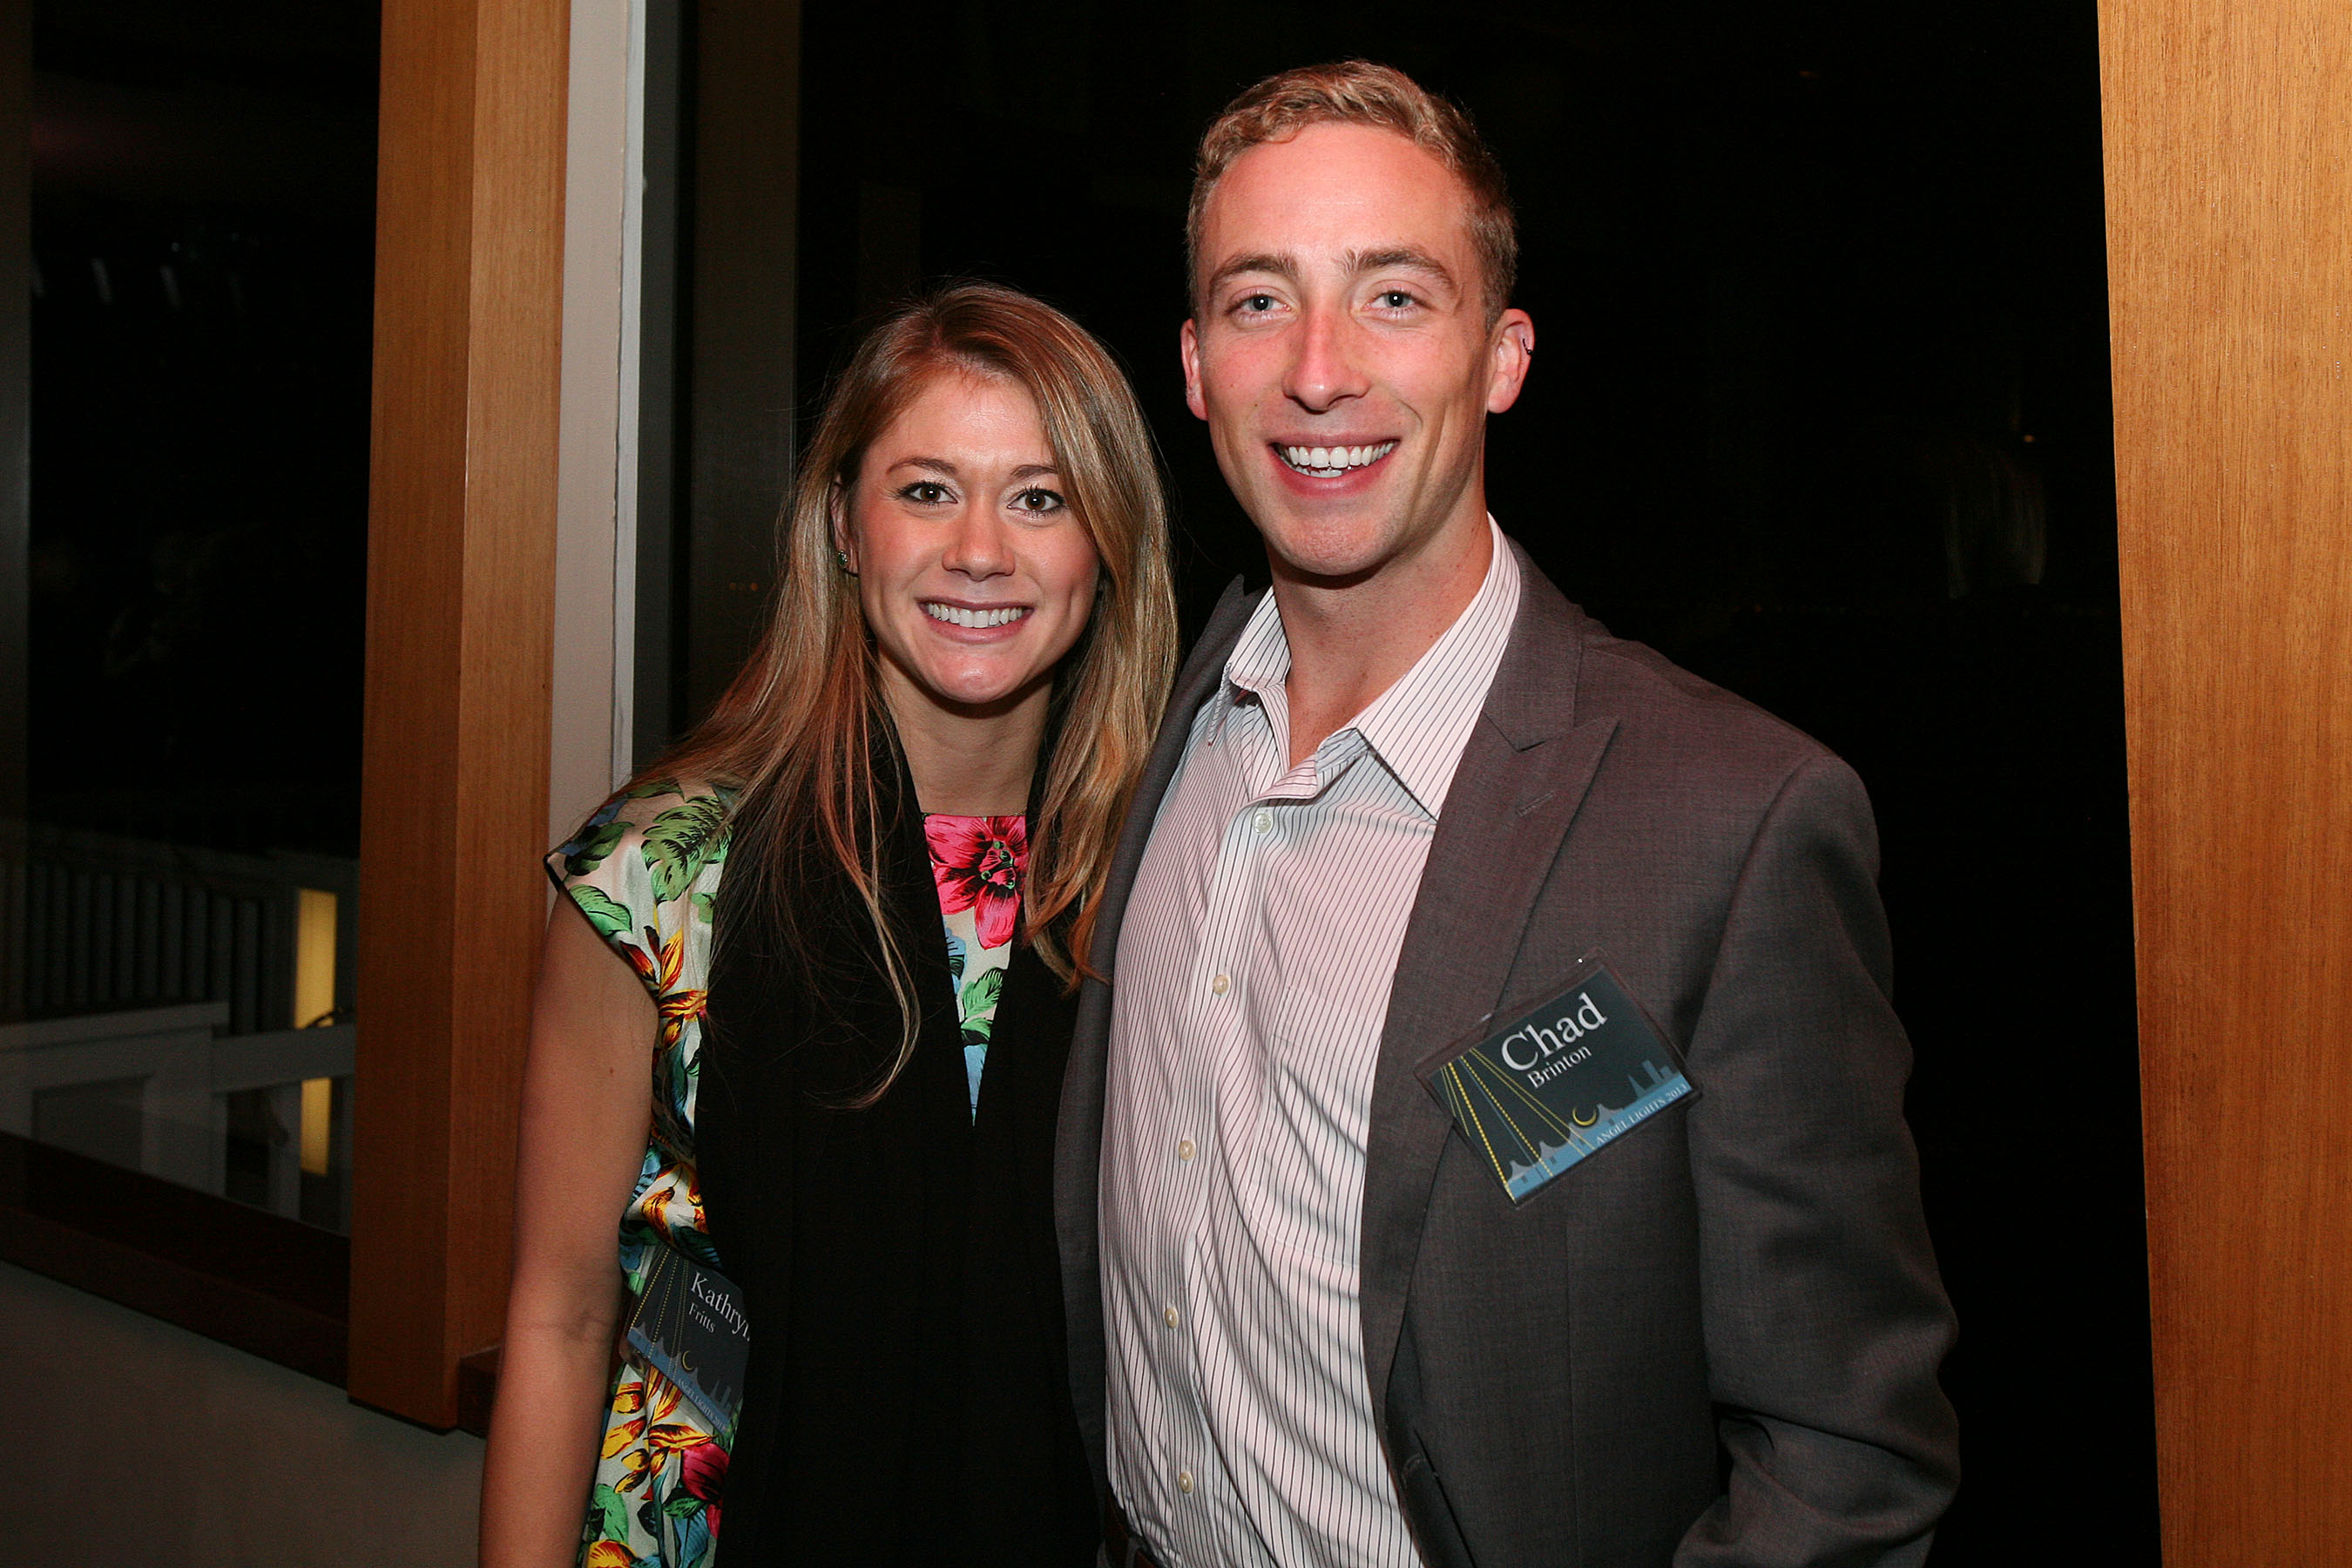 Kathryn Fritts and Chad Brinton